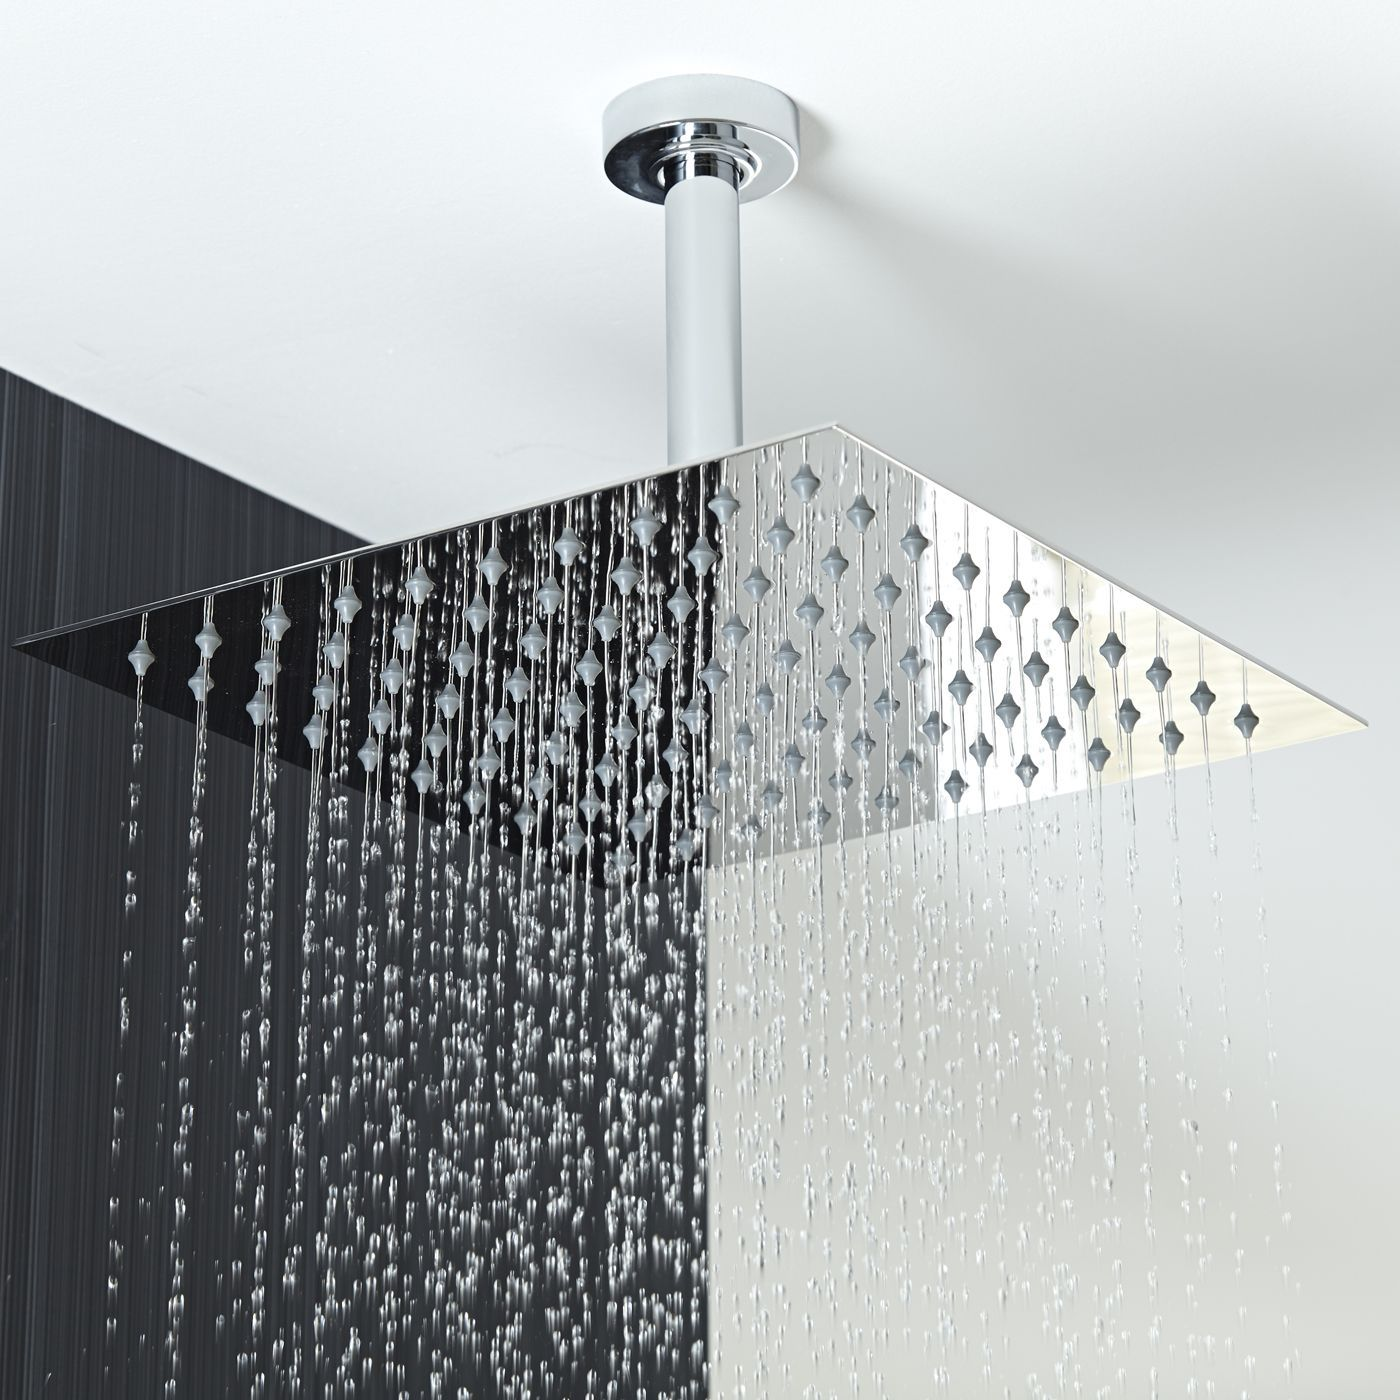 12 Square Shower Head With Round Ceiling Arm